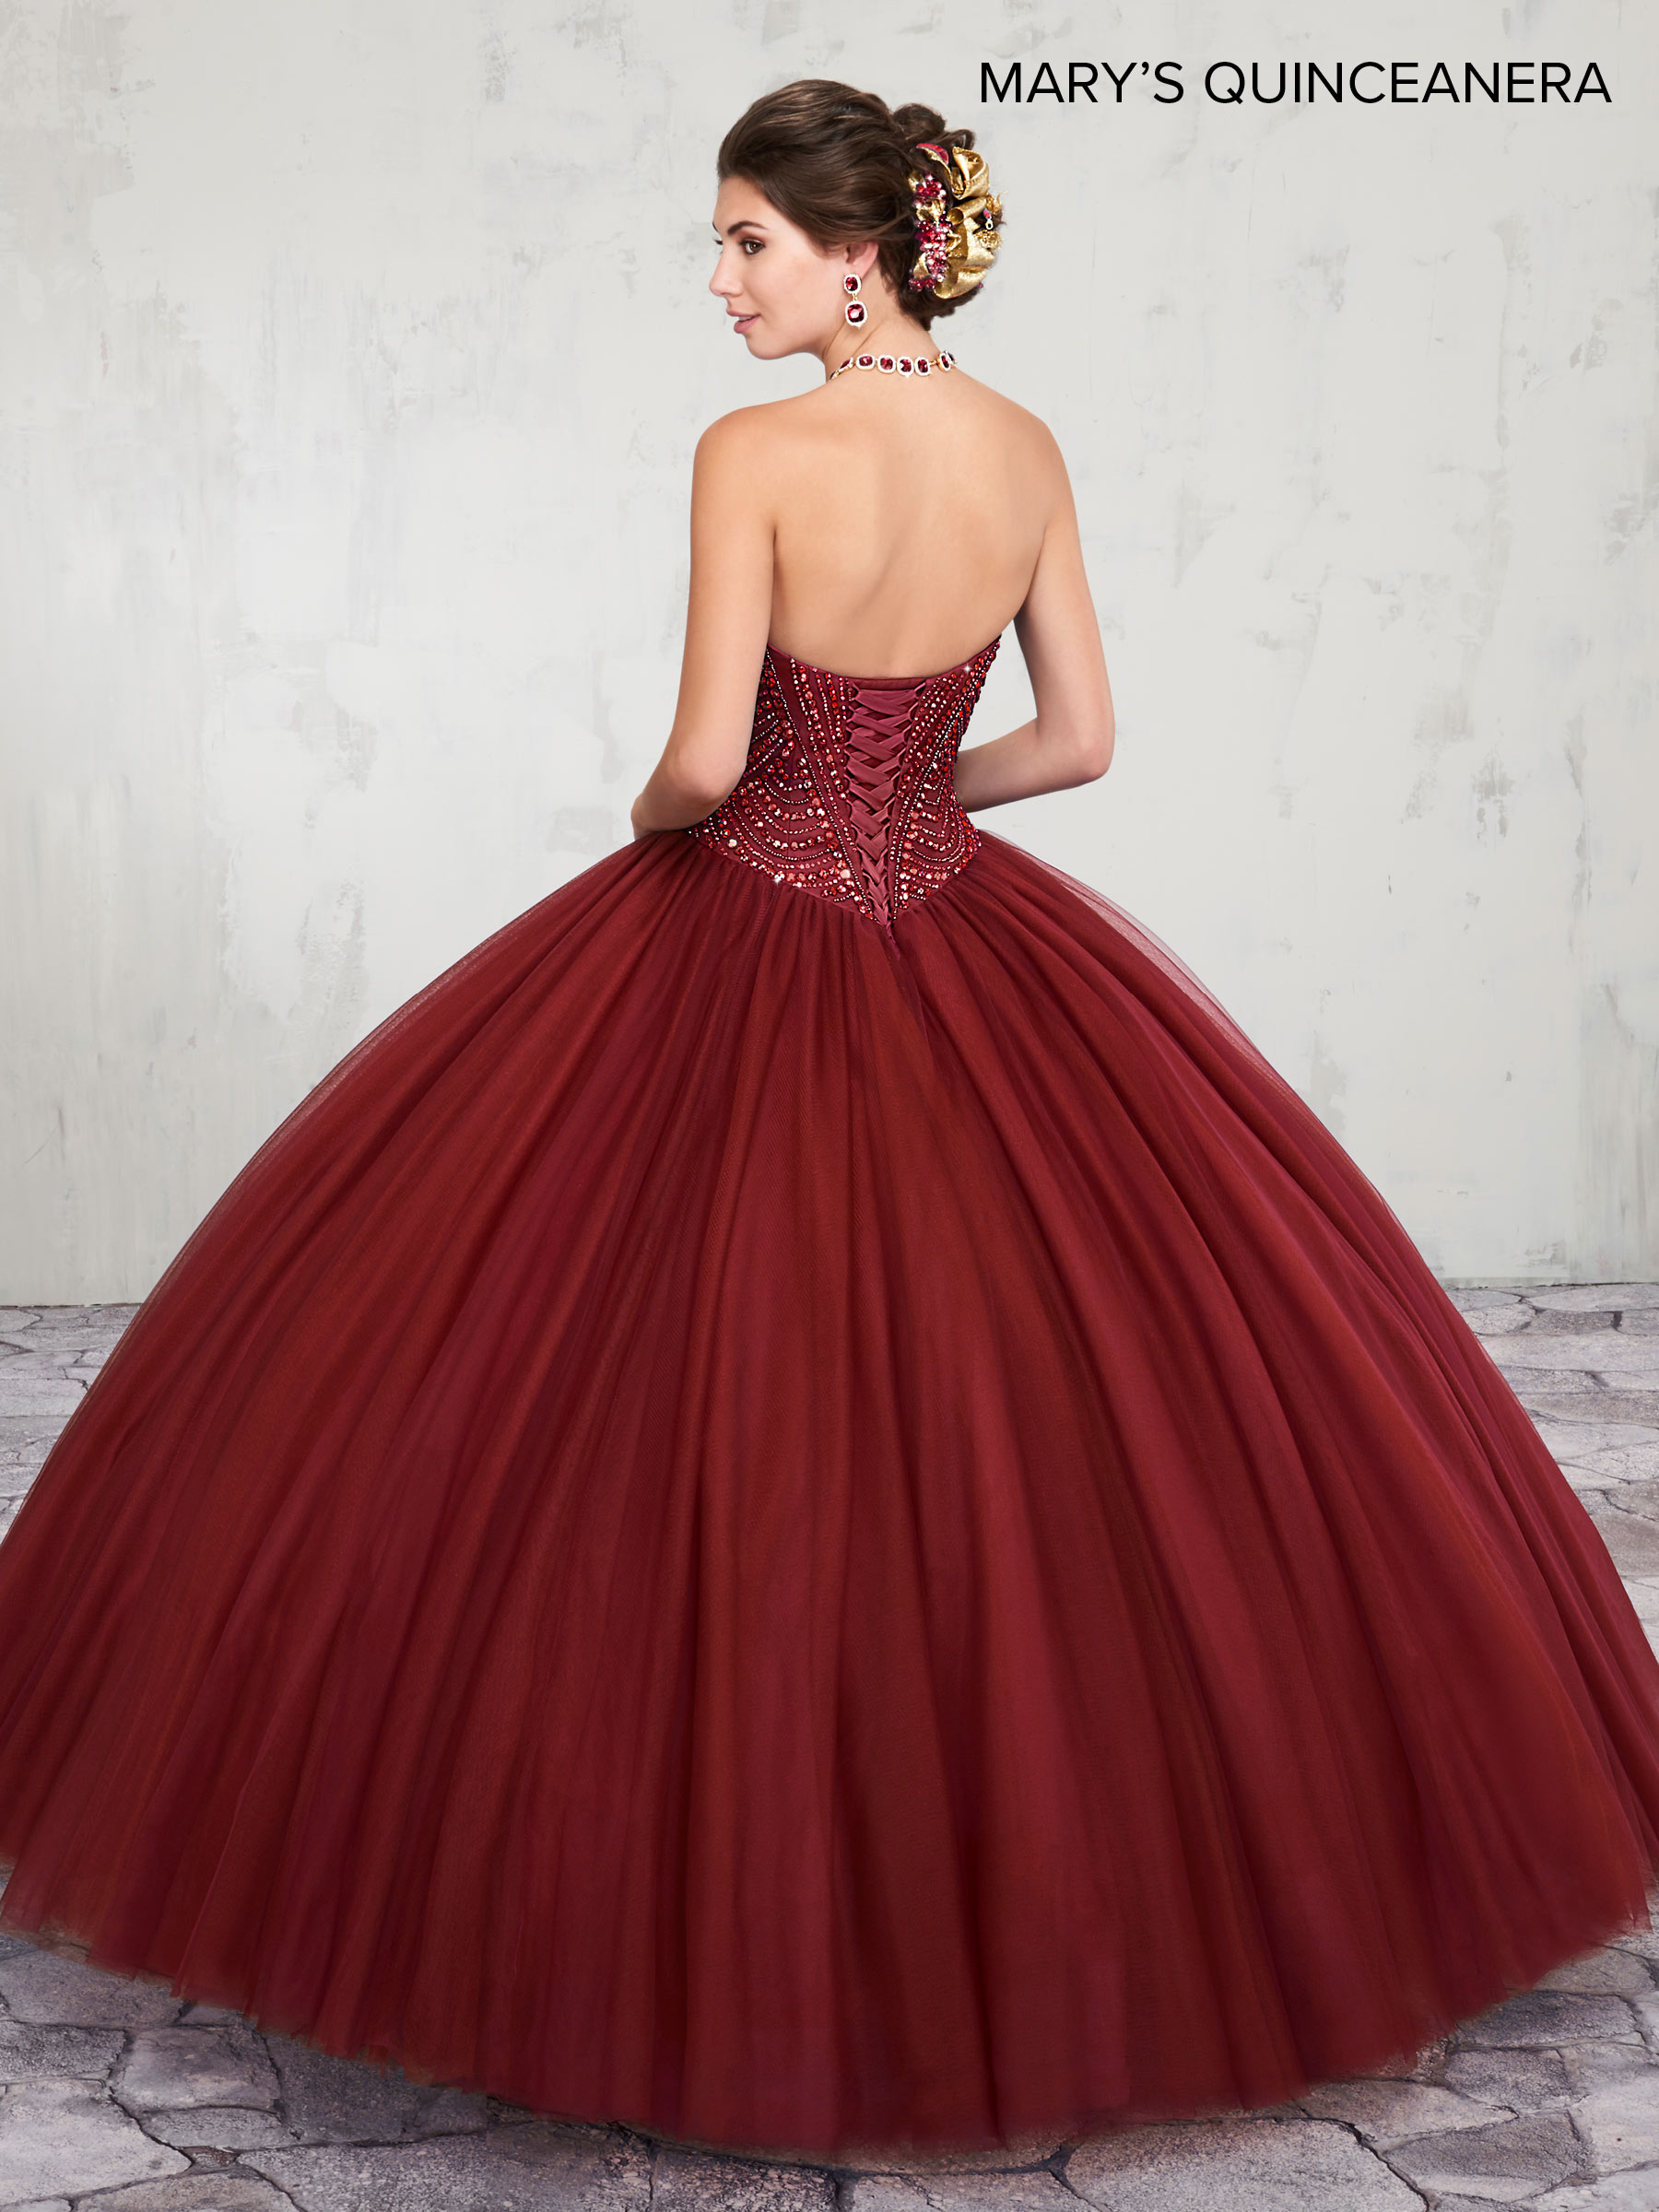 Marys Quinceanera Dresses   Mary's Quinceanera   Style - MQ1010